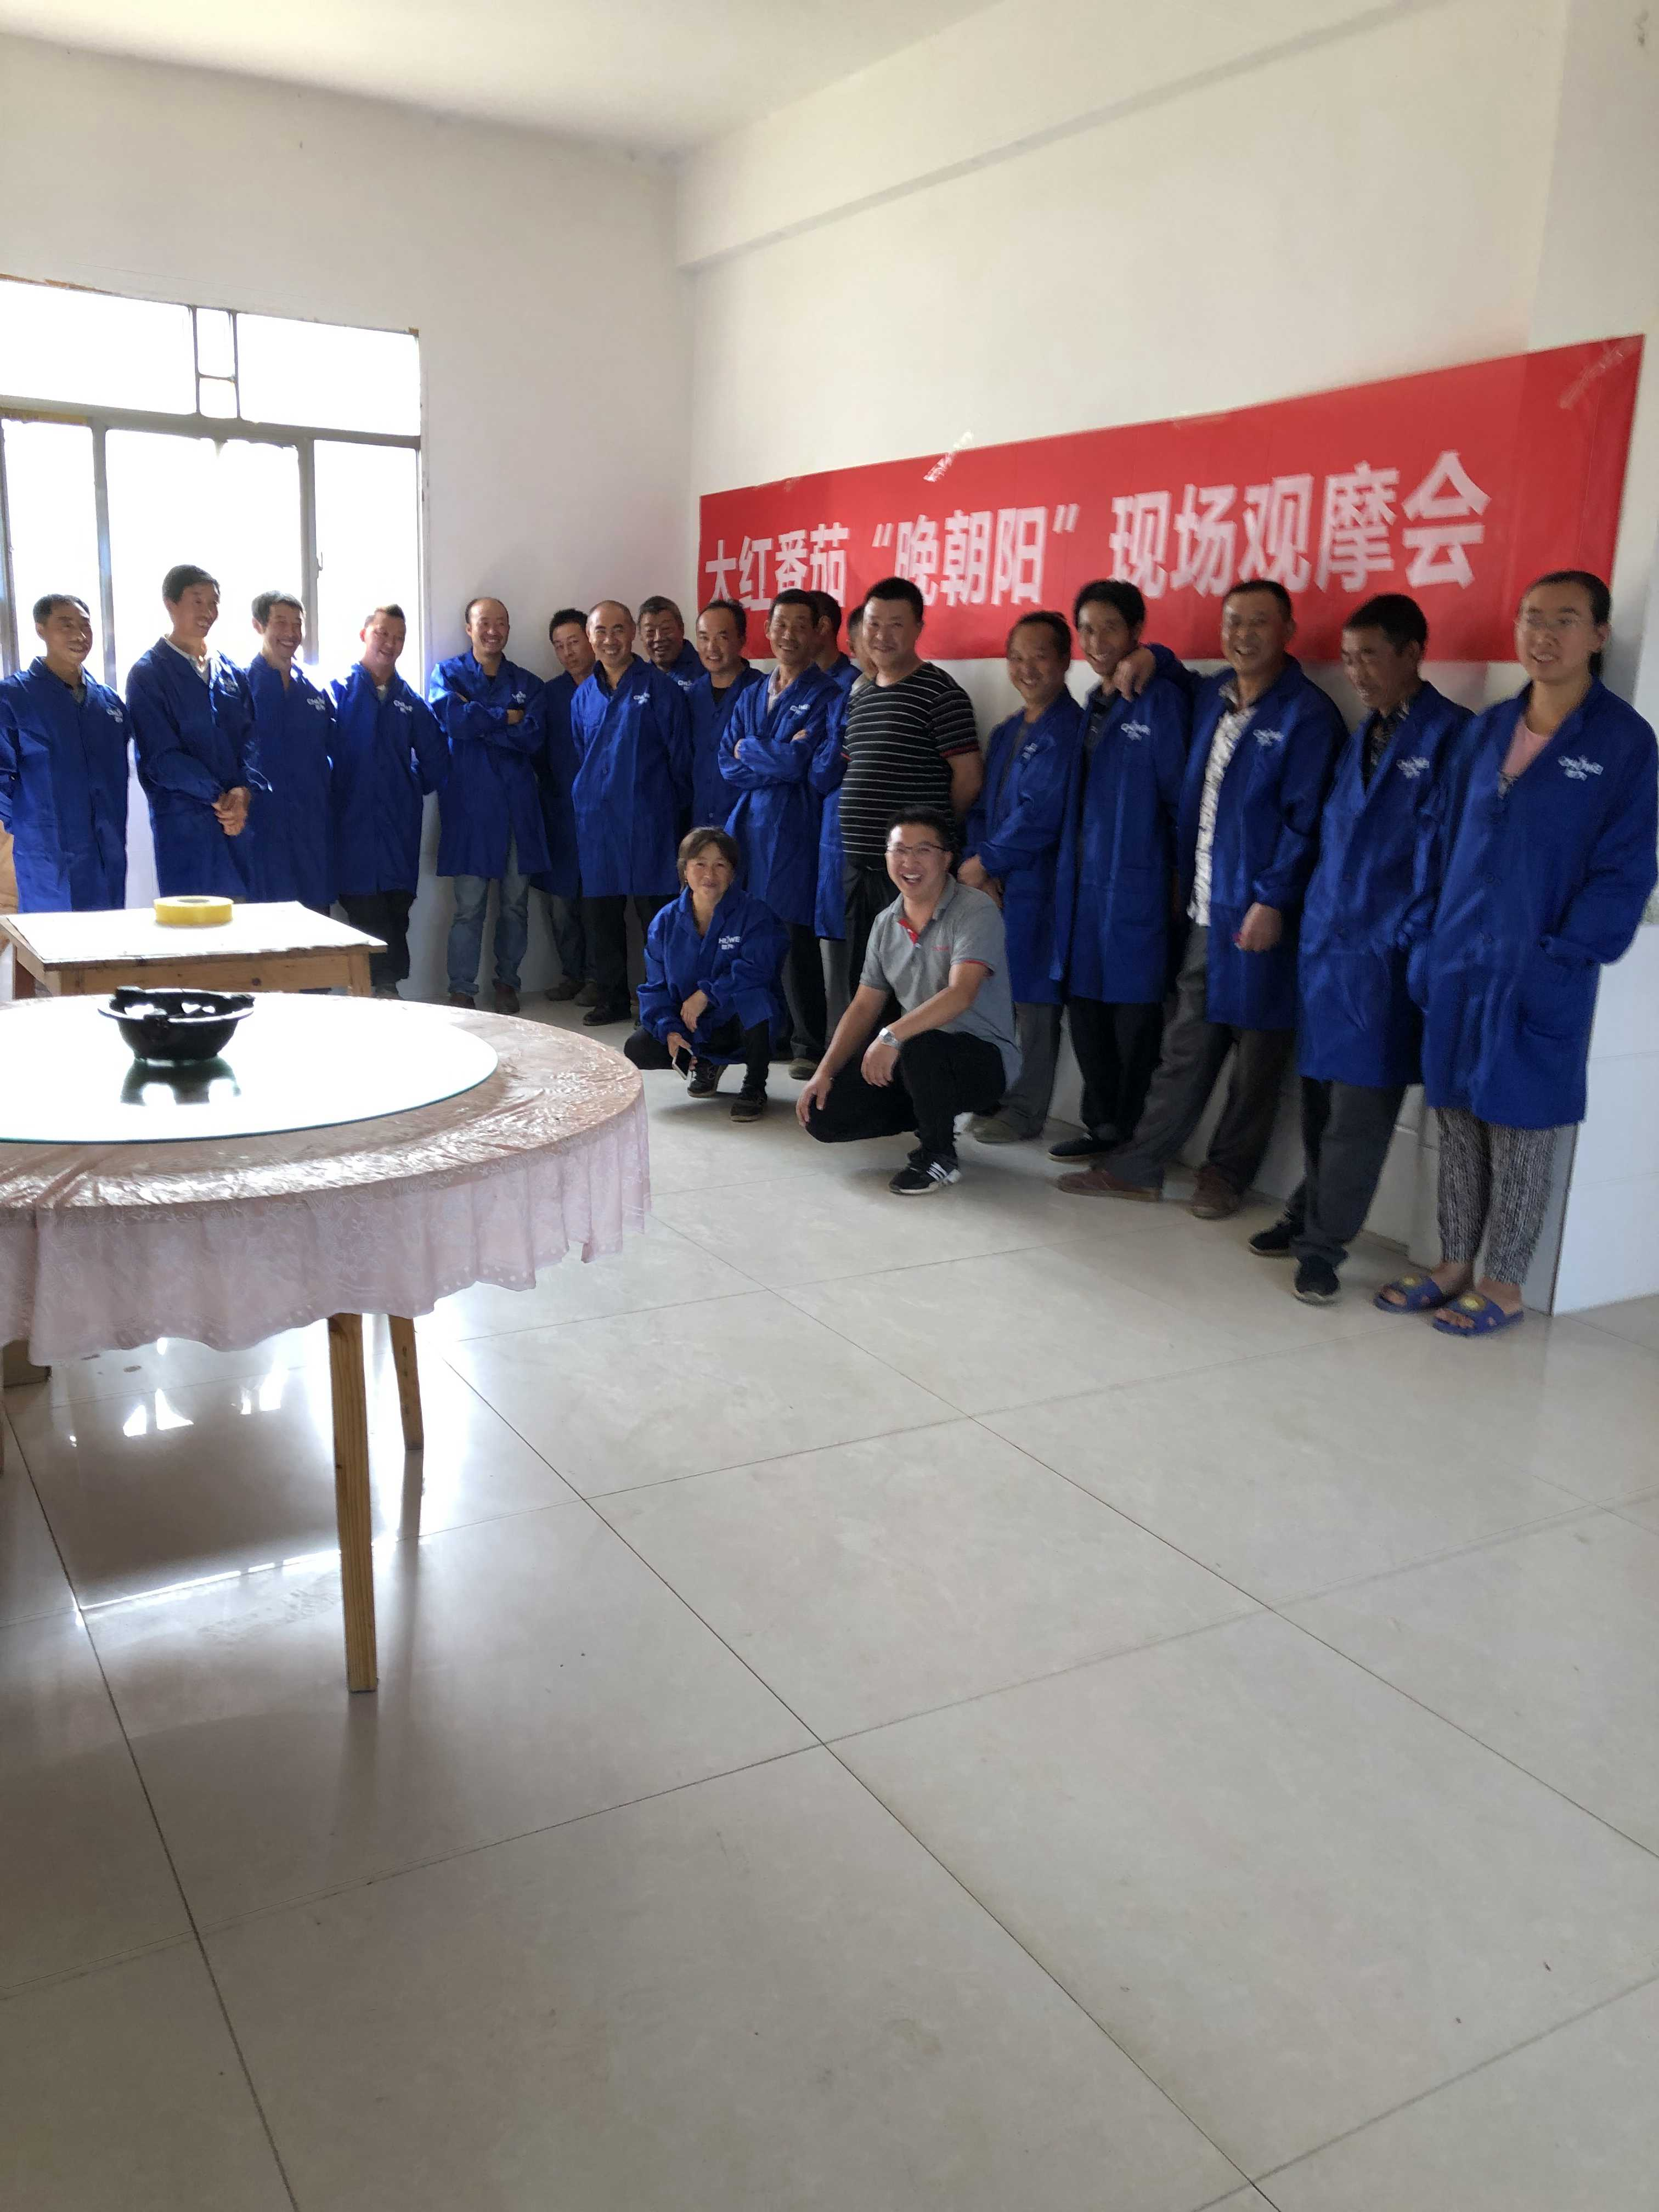 Hubei Changyang Evening Chaoyang Observation Meeting